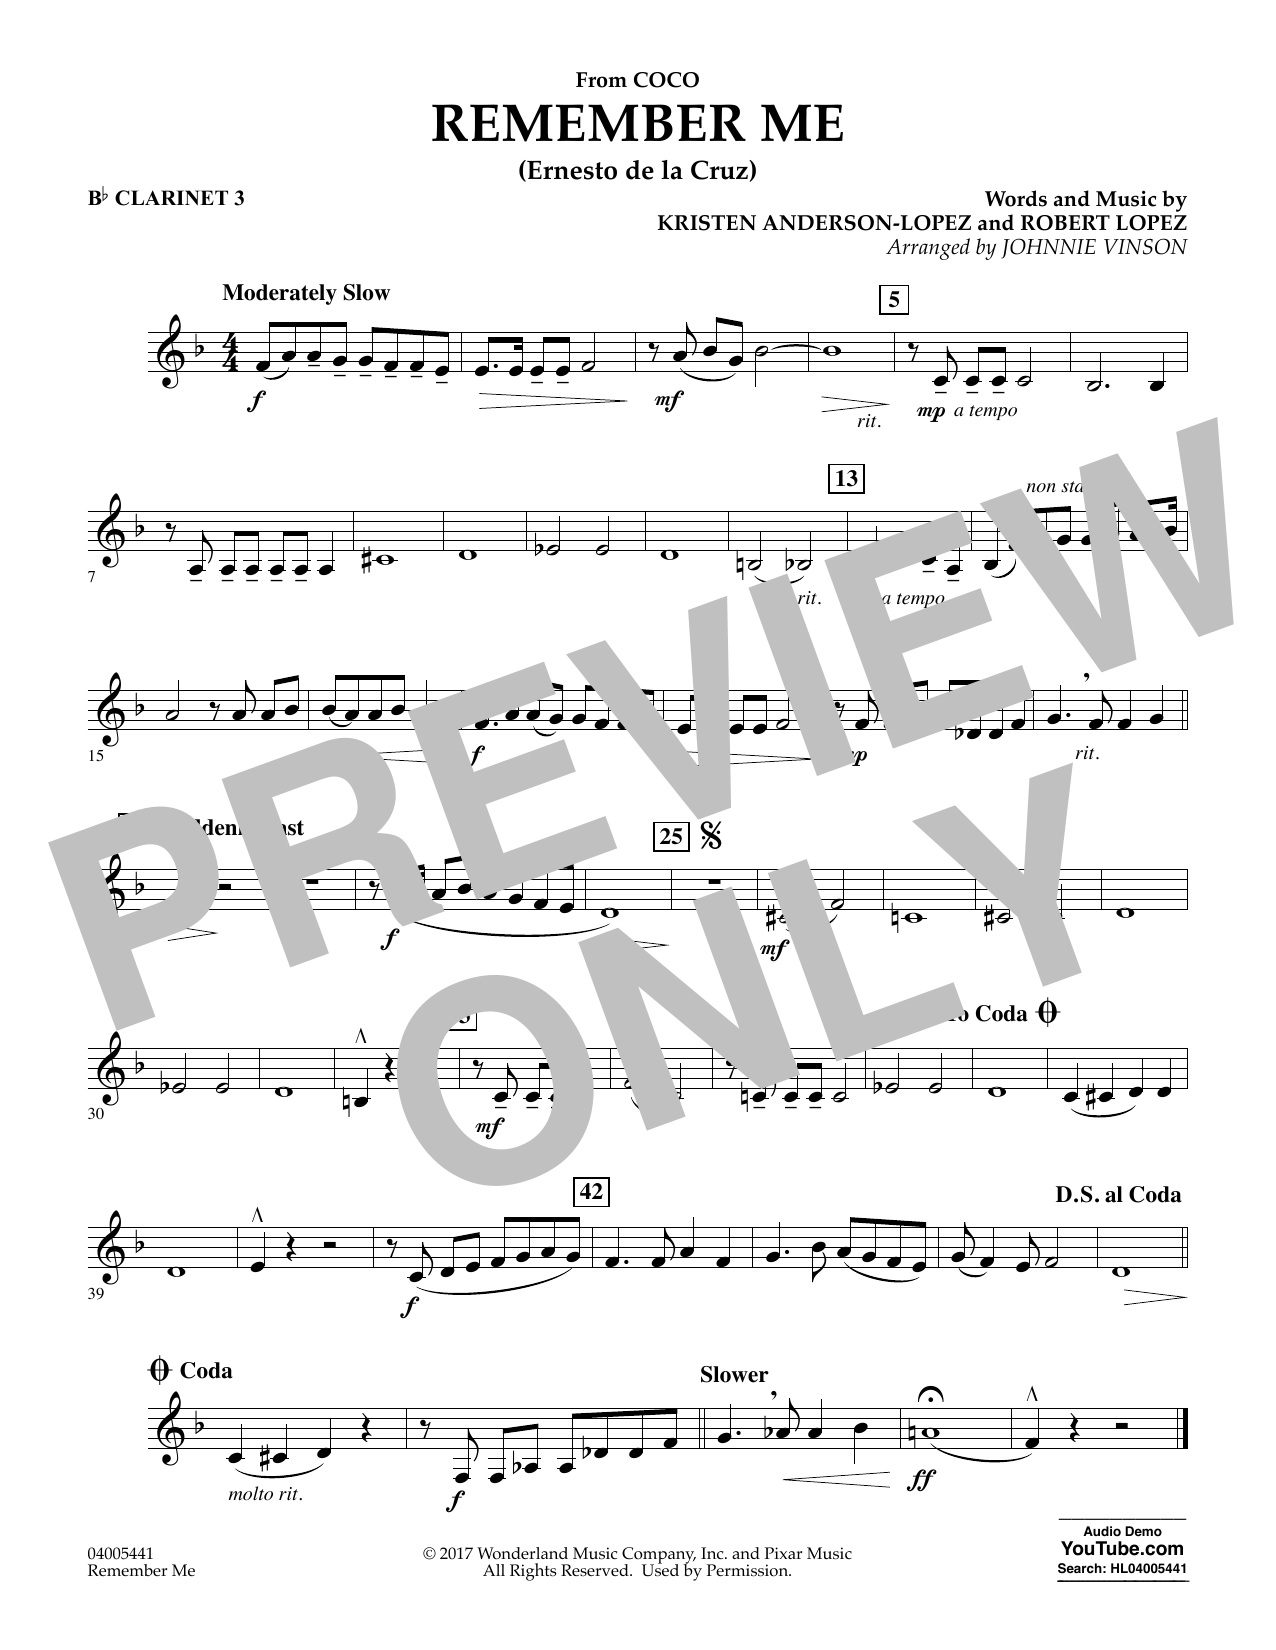 Kristen Anderson-Lopez & Robert Lopez Remember Me (from Coco) (arr. Johnnie Vinson) - Bb Clarinet 3 sheet music notes and chords. Download Printable PDF.